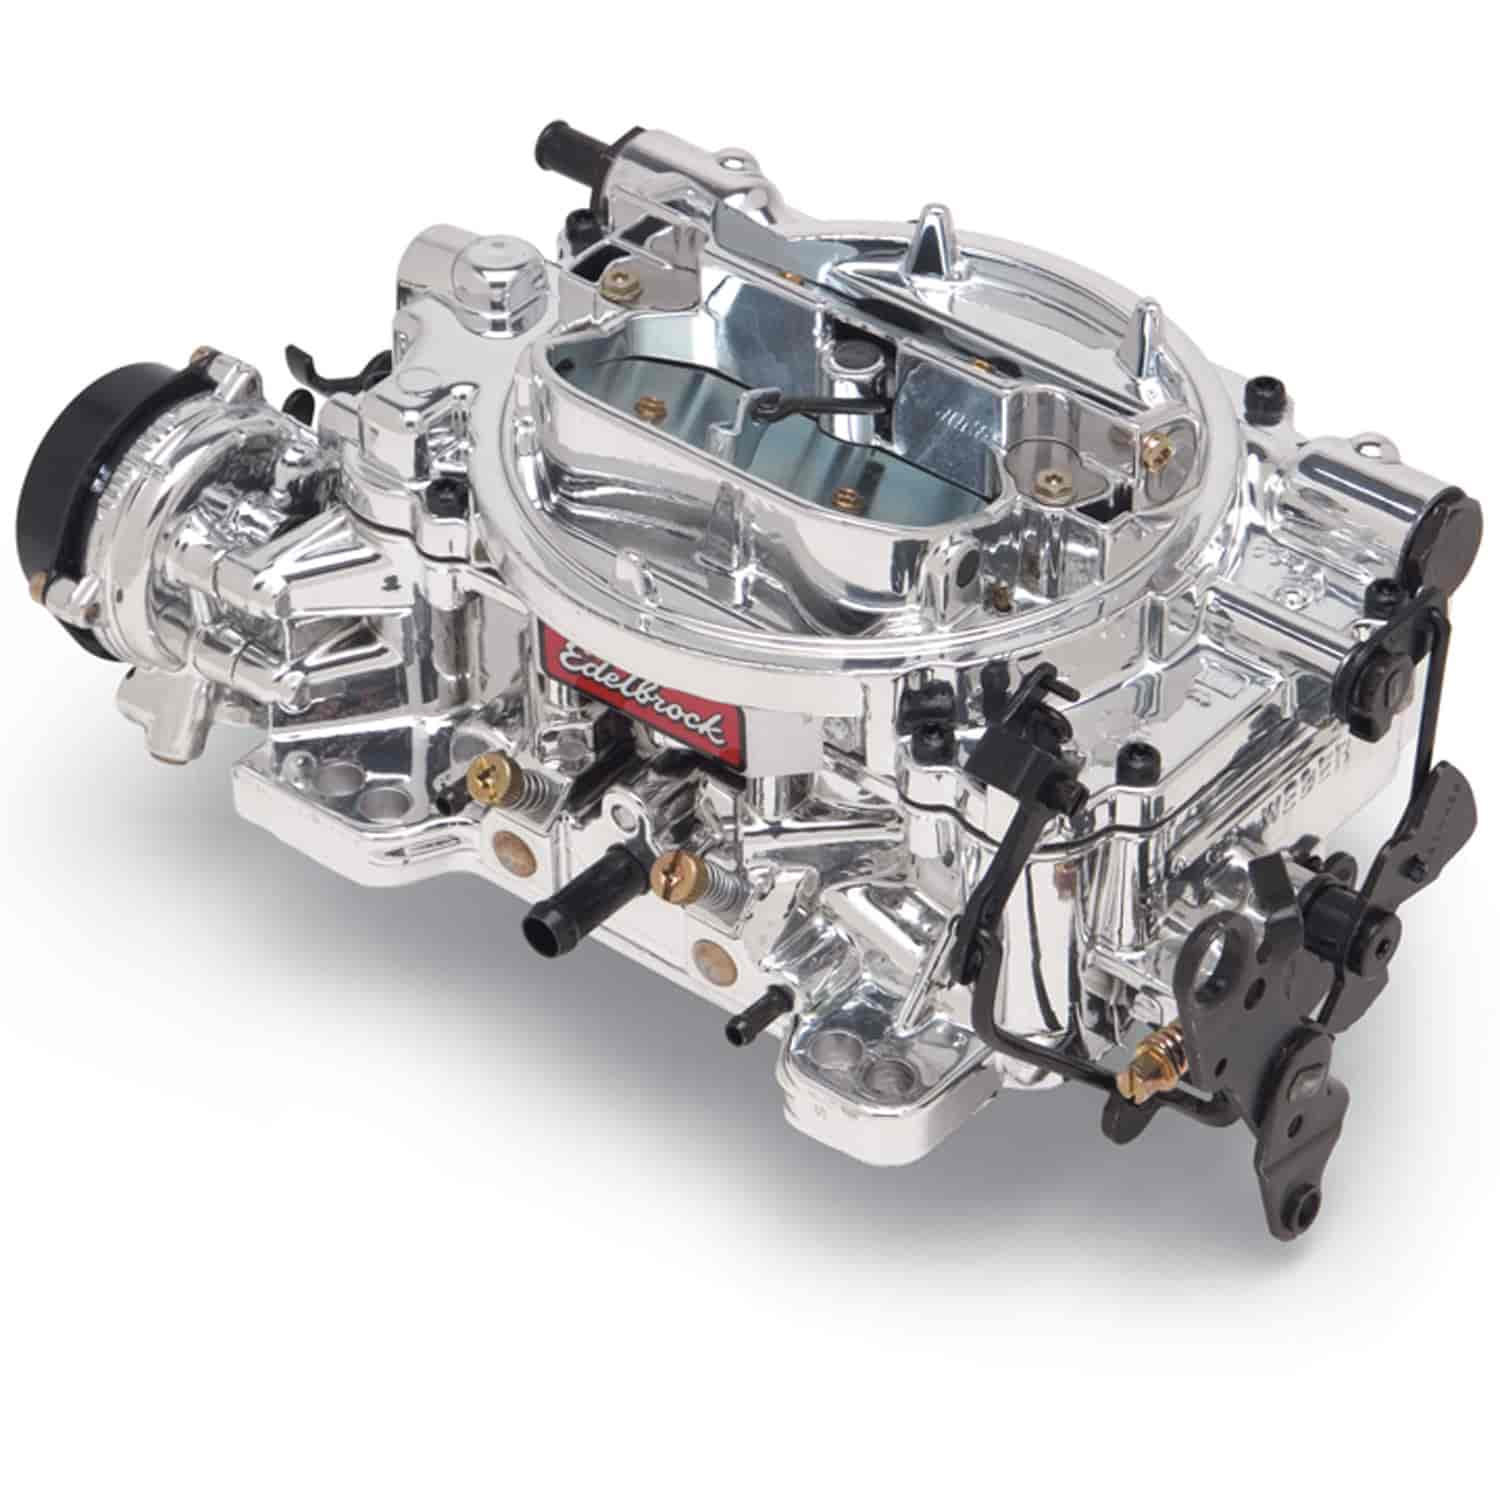 Edelbrock 180149 - Edelbrock Thunder Series AVS Carburetors